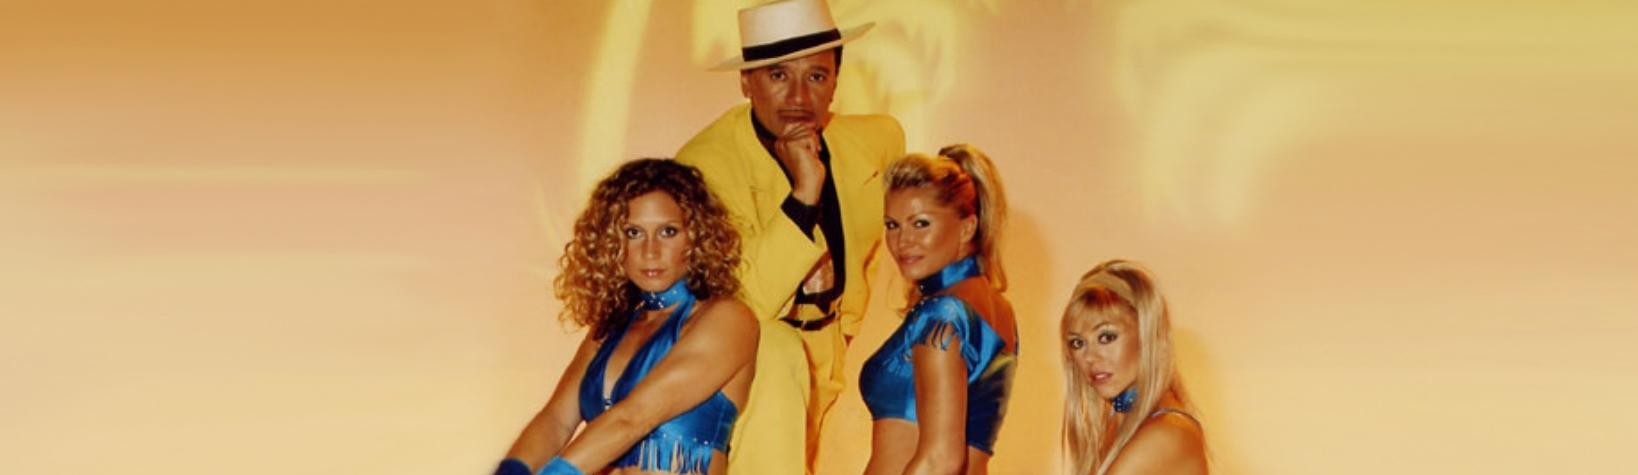 Kid Creole And The Coconuts* Kid Creole & The Coconuts·Present Coati Mundi* Coatimundi - Me No Pop I